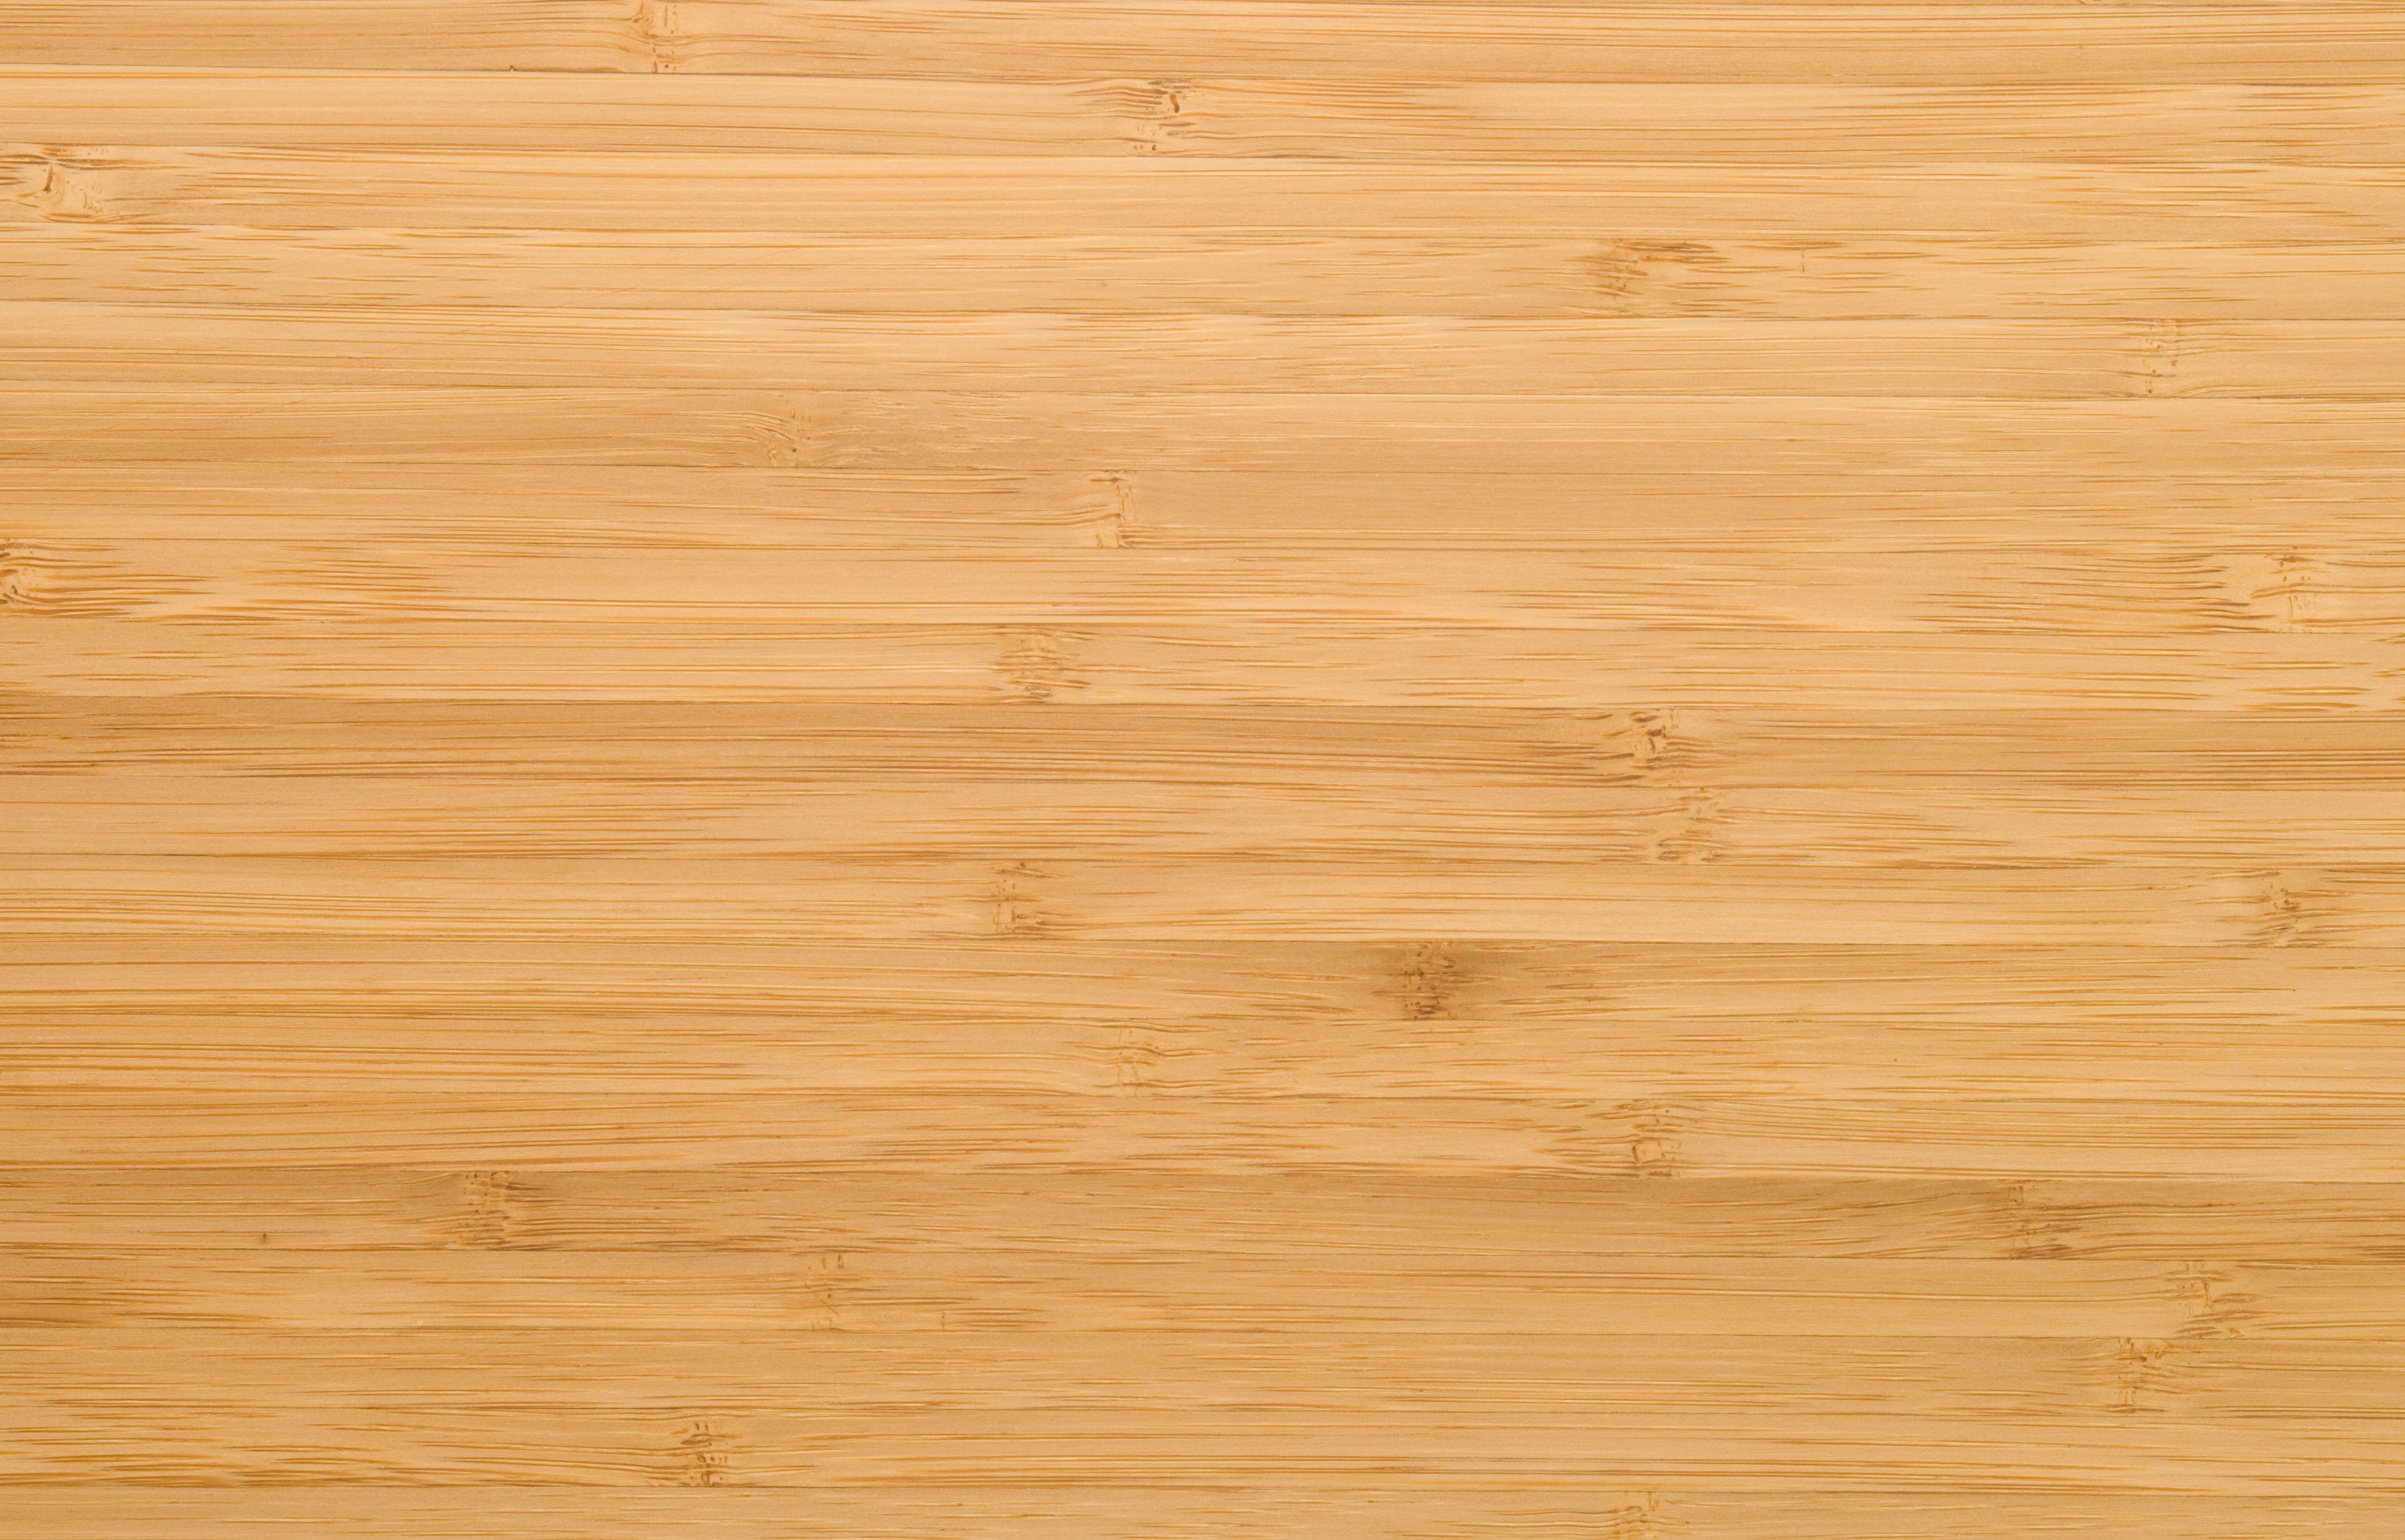 bamboo engineered hardwood flooring of can you use a wet mop on bamboo floors within natural bamboo plank 94259870 59aeefd4519de20010d5c648